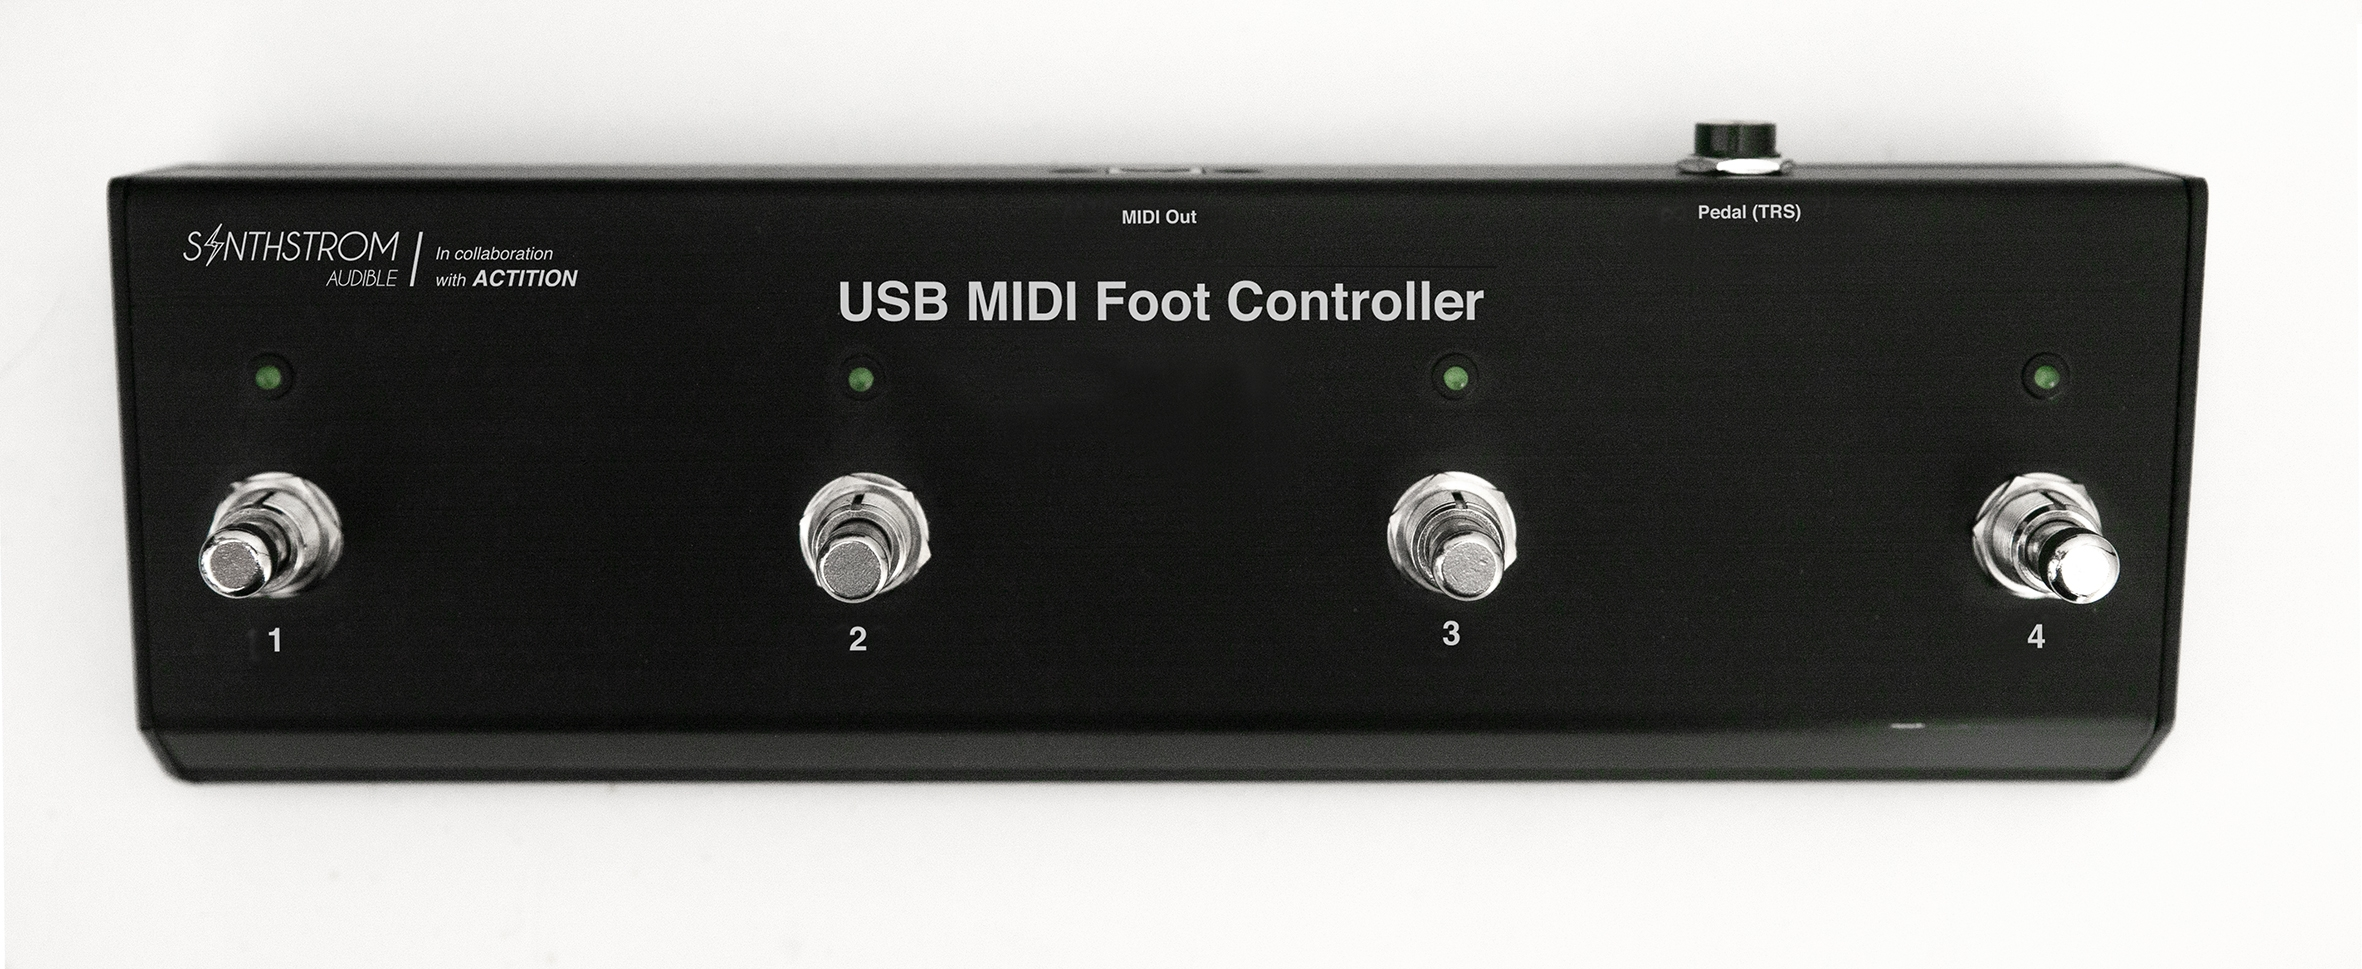 USB MIDI Foot Controller — Synthstrom Audible